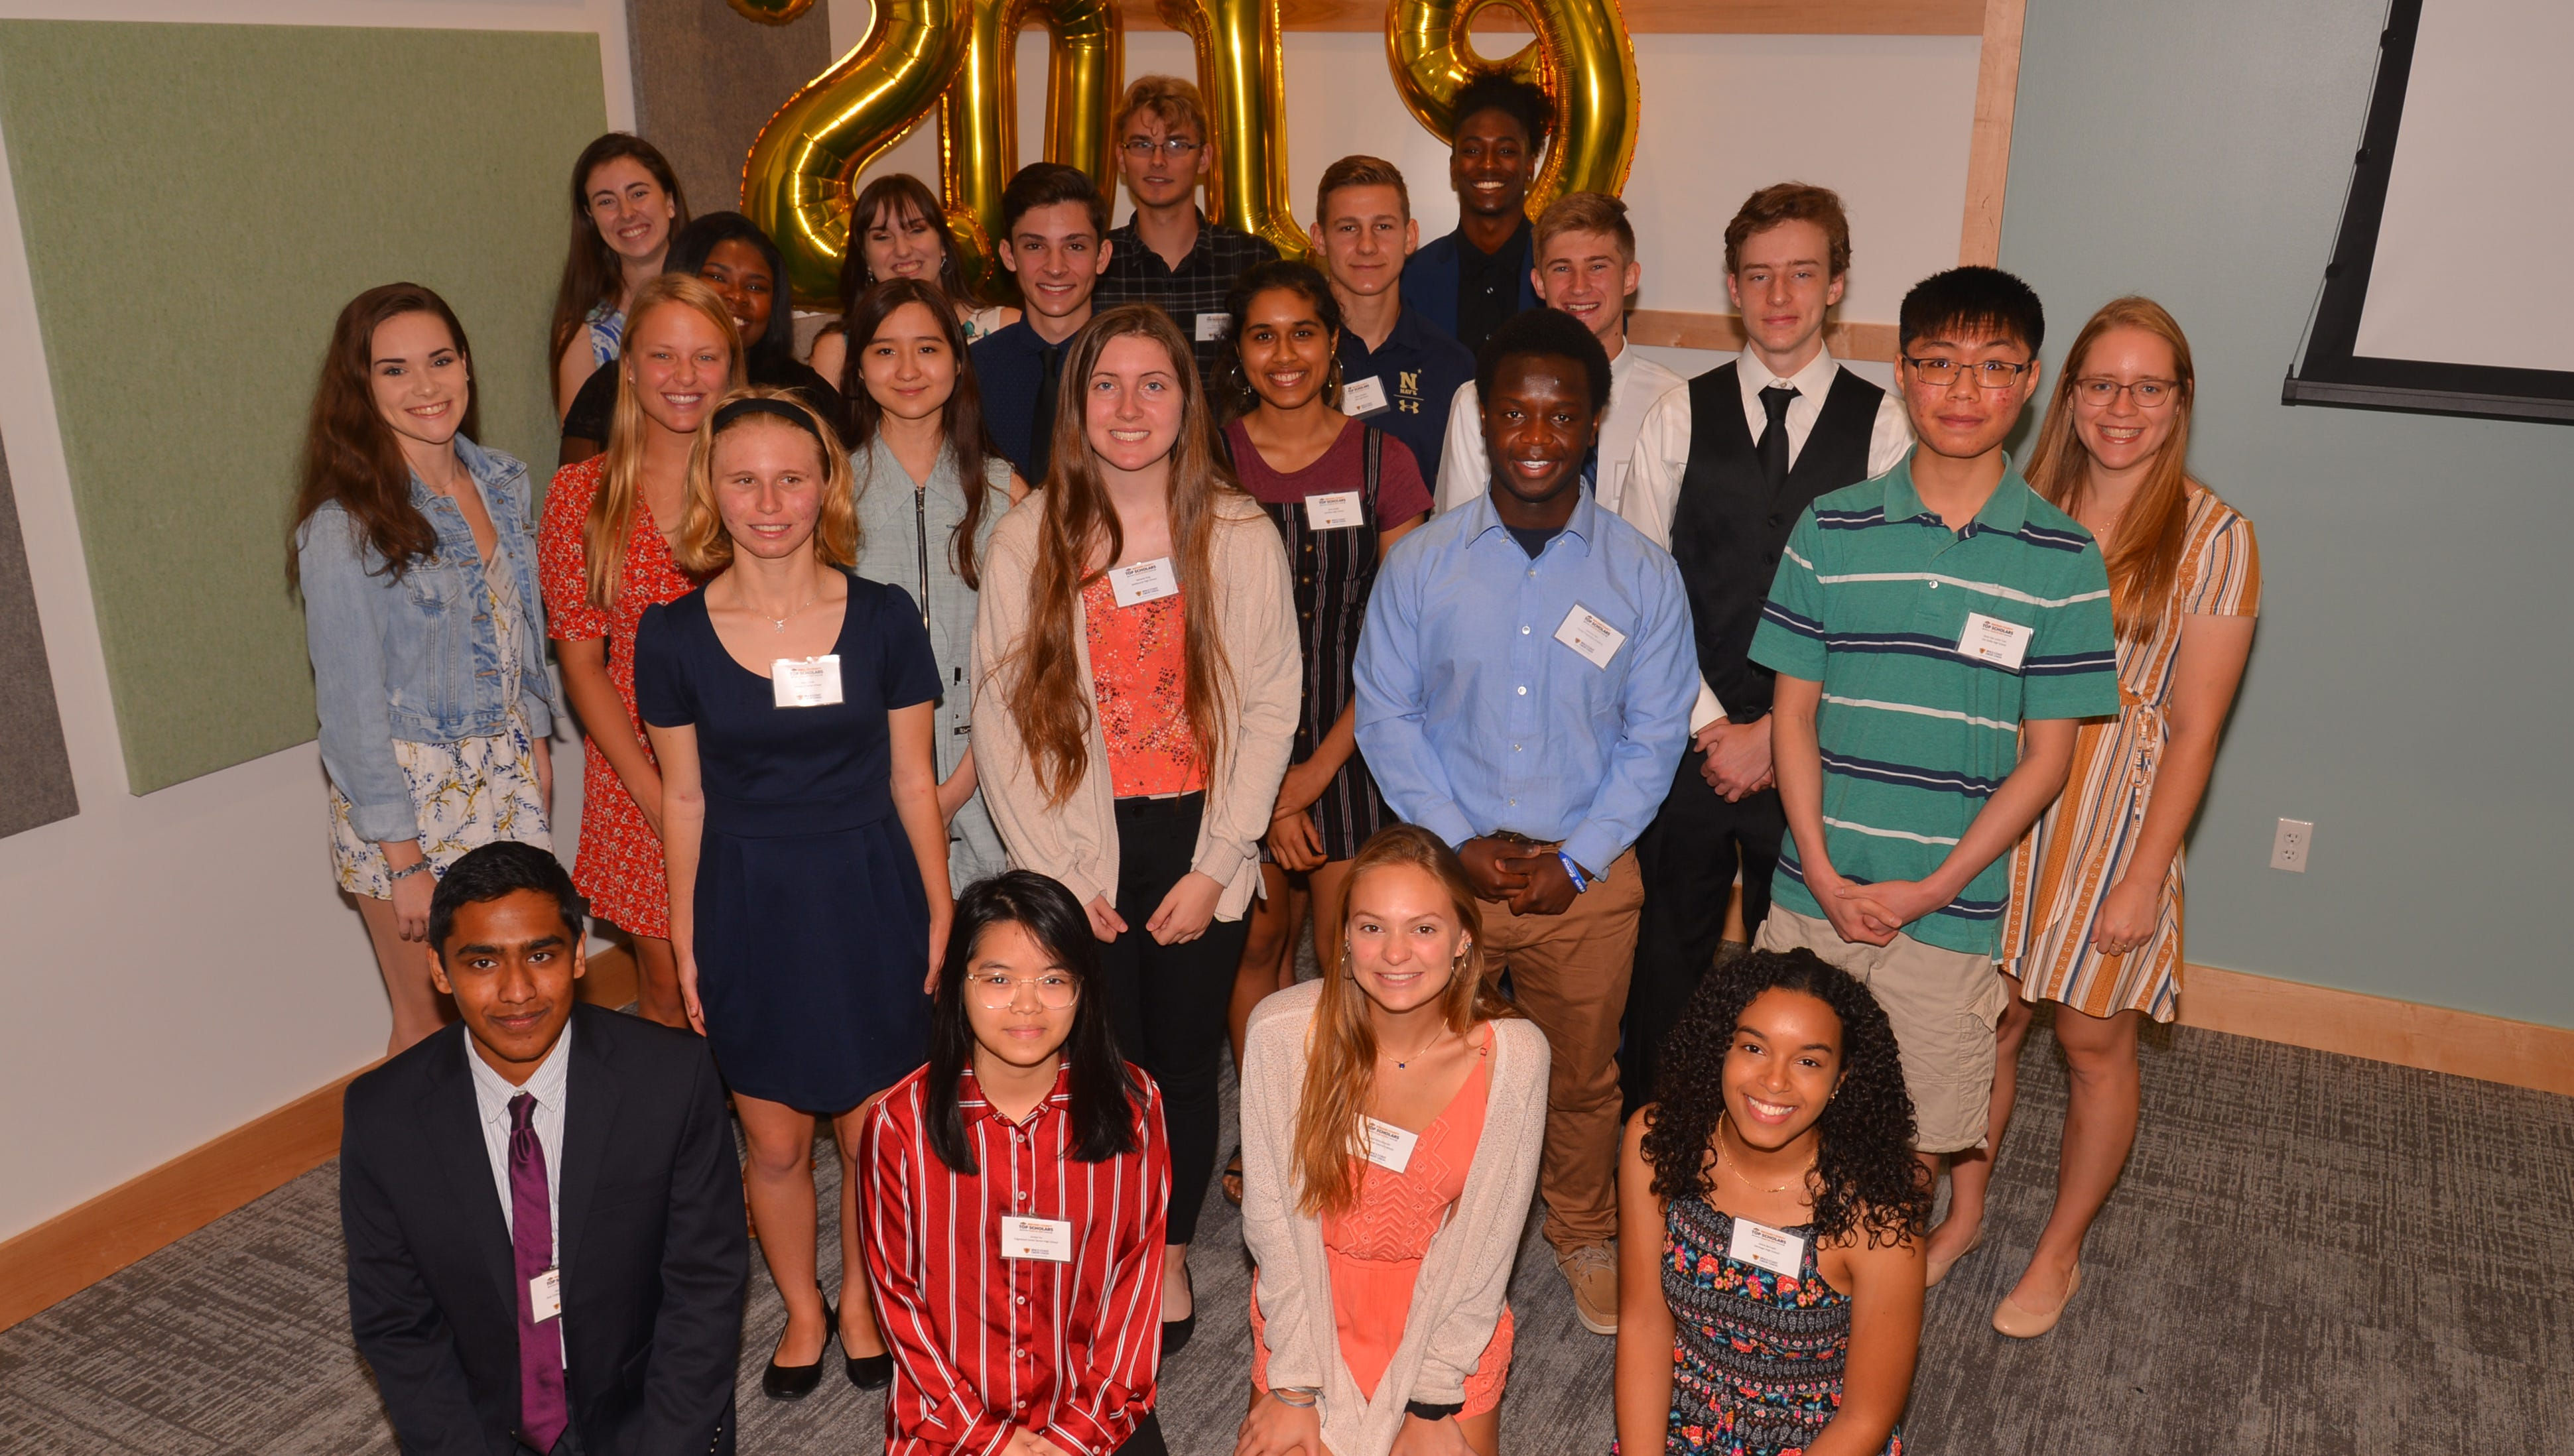 The FLORIDA TODAY Top Scholars recognition breakfast sponsored by the Space Coast Credit Union took place at the Eastern Florida State College Student Union building  on the Melbourne campus Wednesday morning.